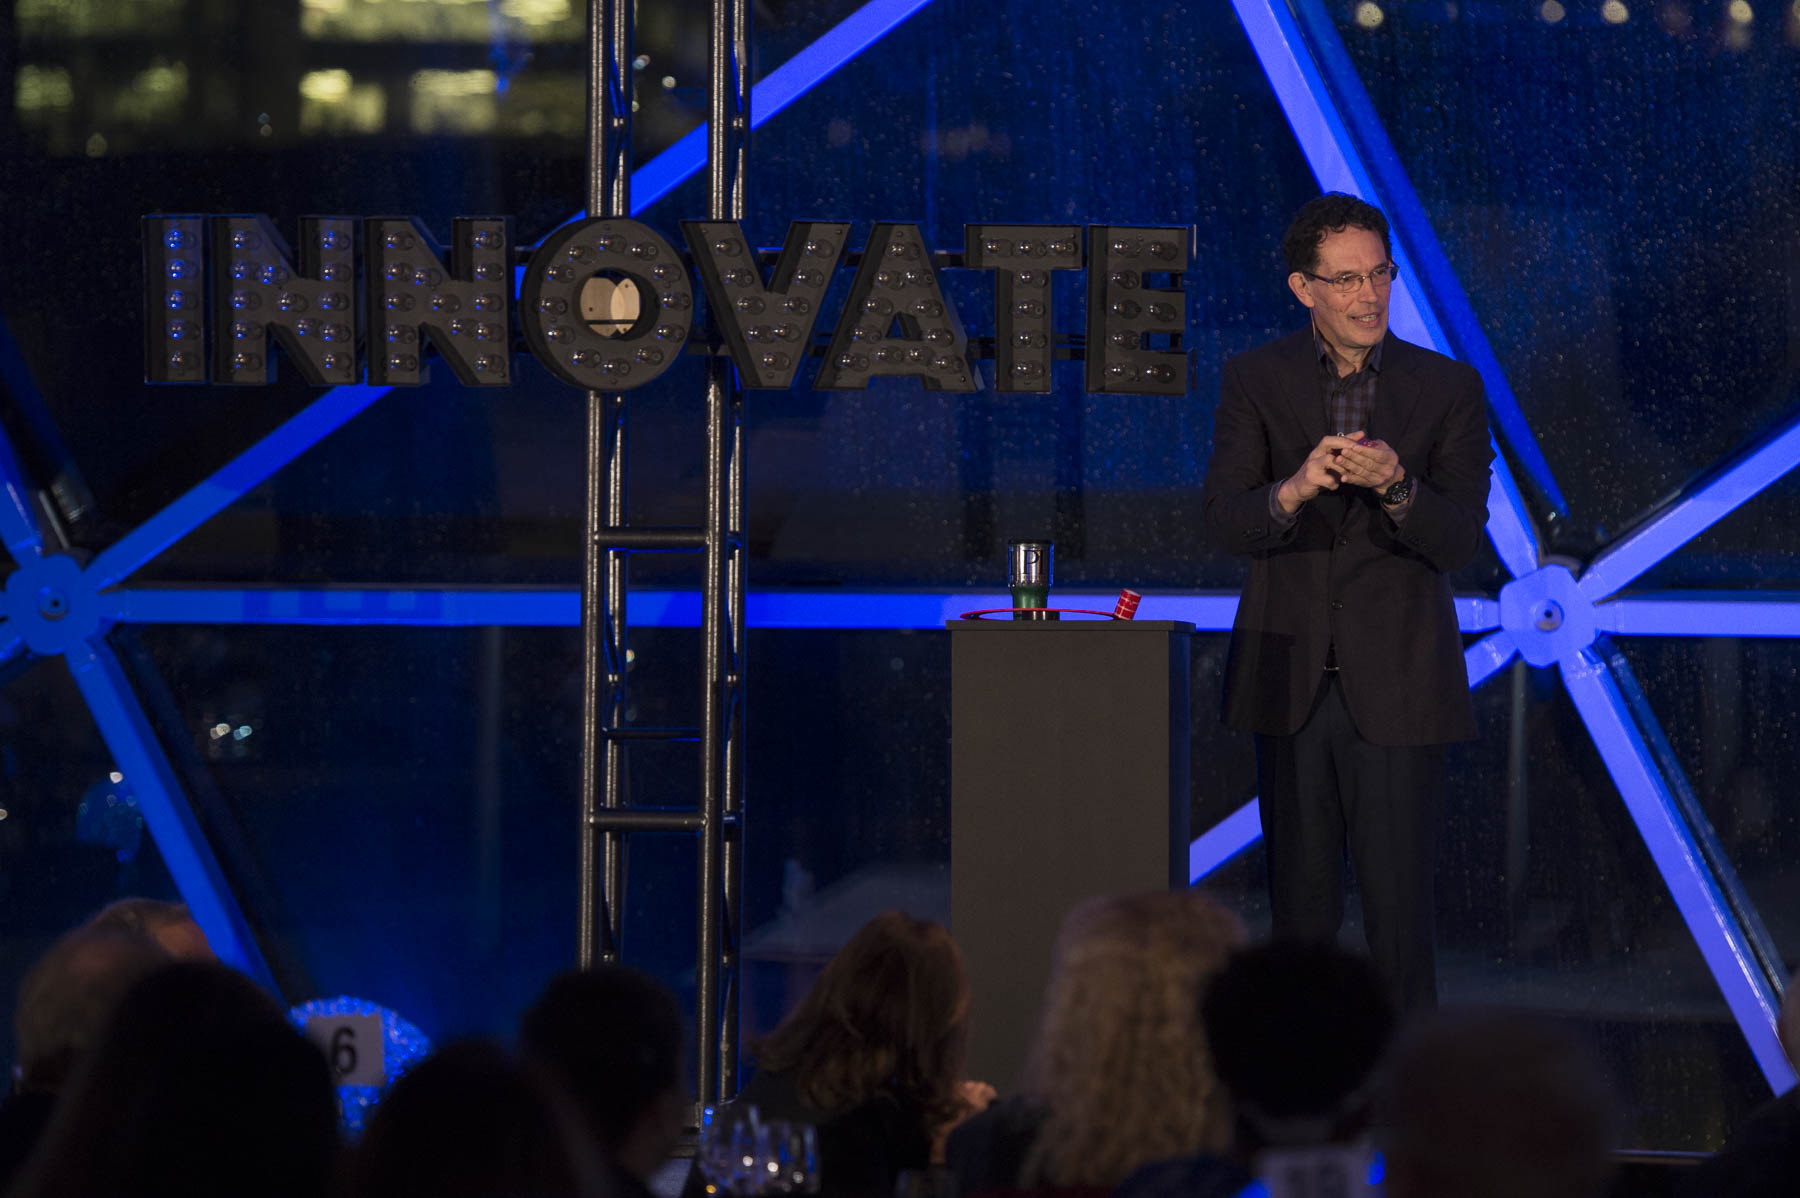 Dr. Neil Turok, Director of Perimeter Institute for Theoretical Physics, delivered the keynote address. He drew from his personal experiences to reflect on innovation and what it means for us all.